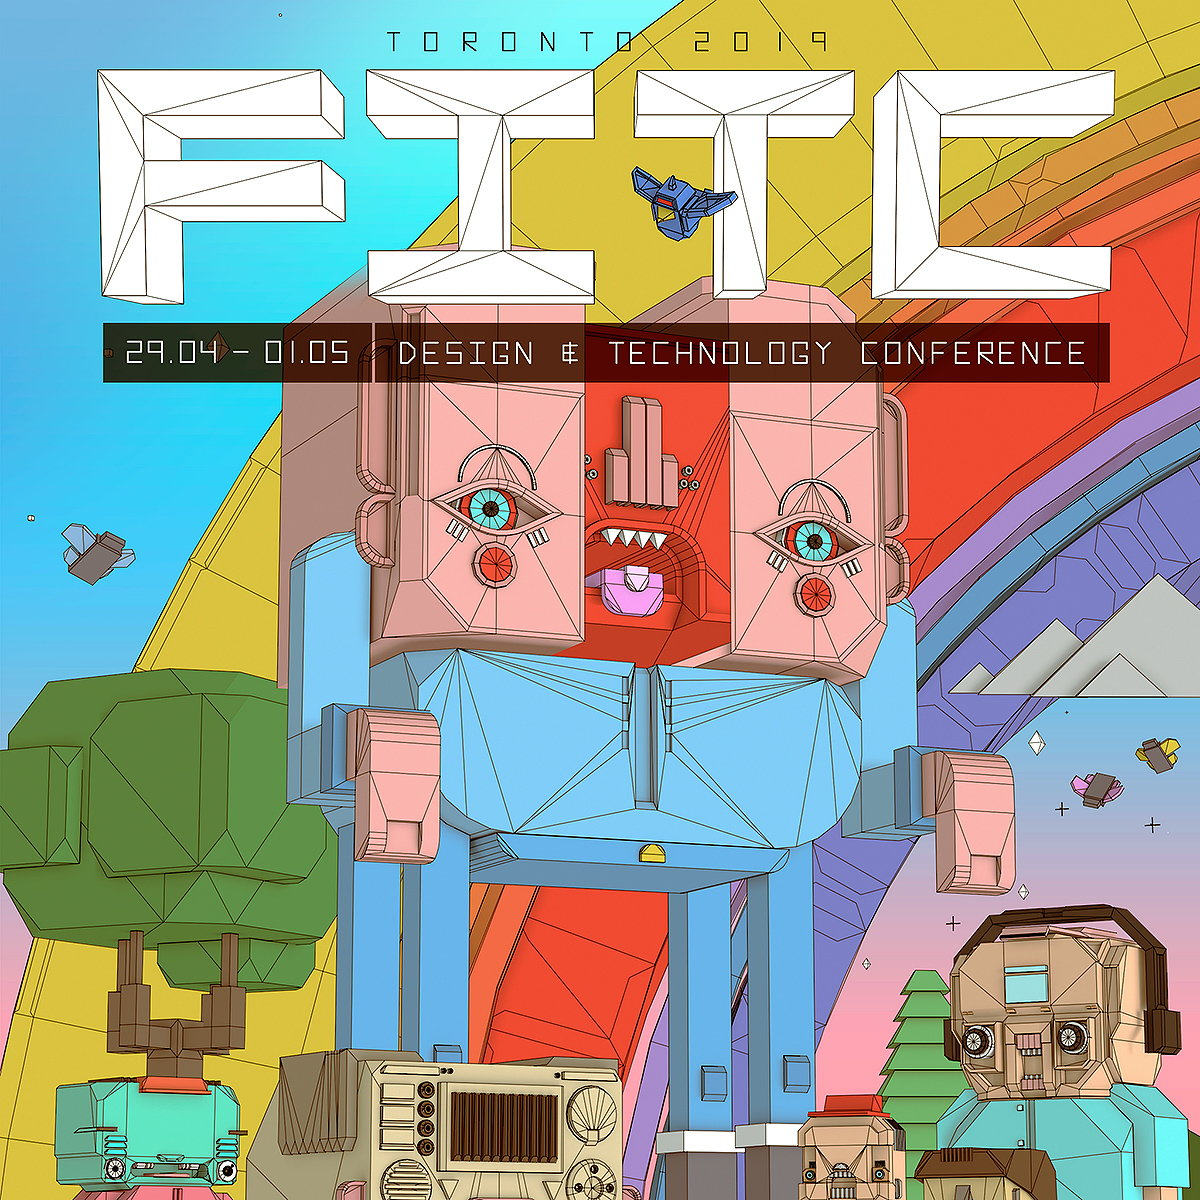 FITC Toronto 2019 - The Technology and Creativity Conference